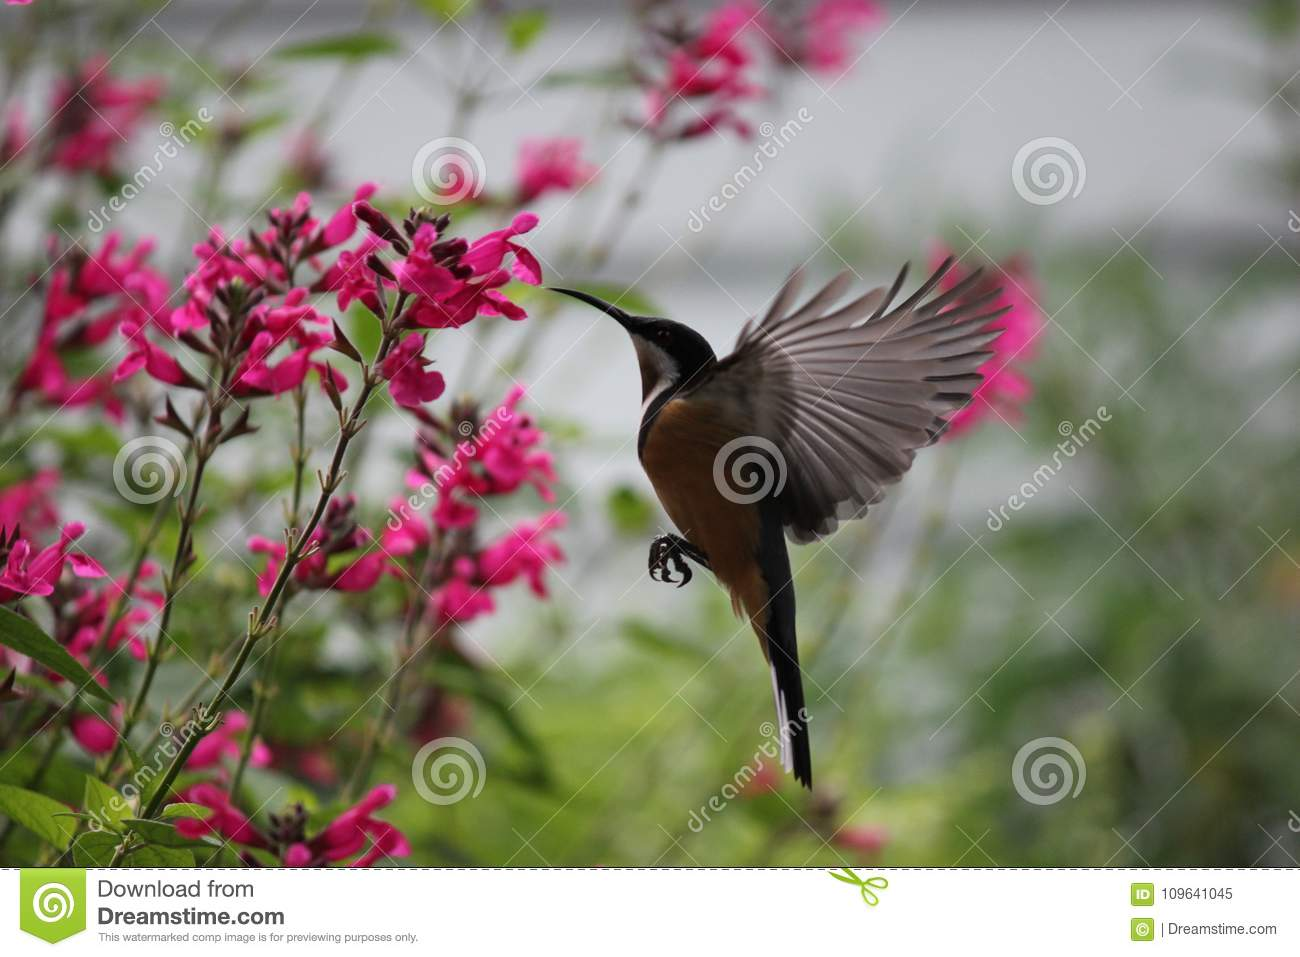 Eastern Spinebill hovering to feed on nectar